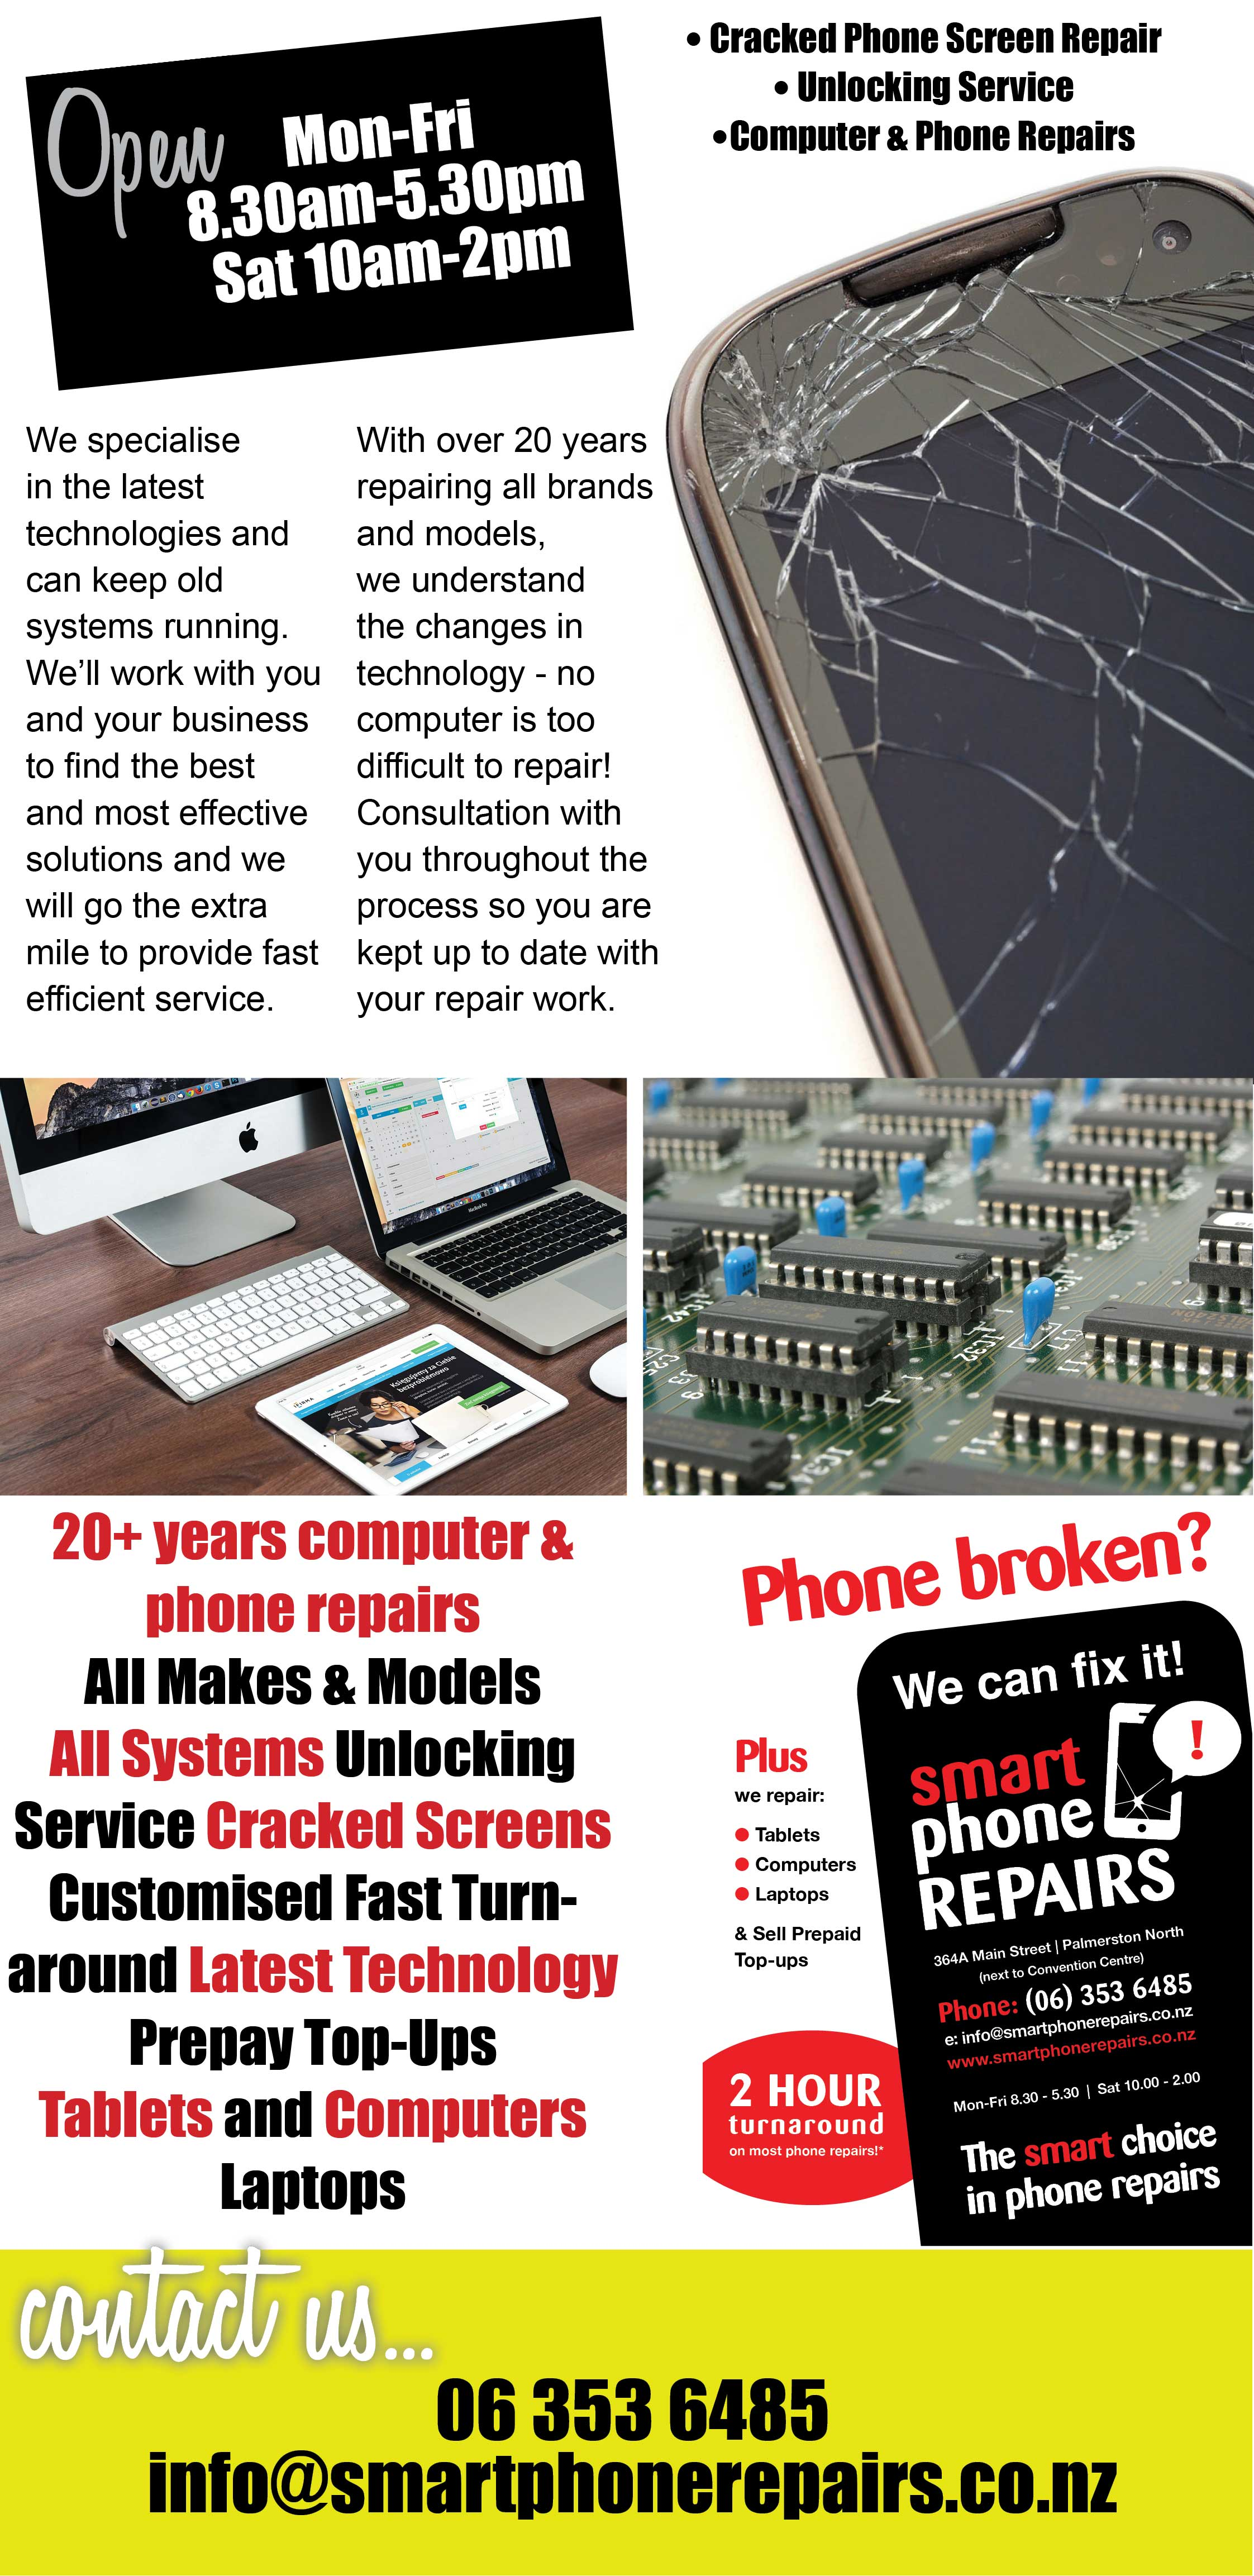 20+ years computer & phone repairs. All Makes & Models, All Systems, Unlocking Service, Cracked Screens, Customised Fast Turn-around, Latest Technology, Prepay Top-Ups, Tablets and Computers Laptops. Smart phone repairs, Phone screen repairs, cracked screen repairs, Palmerston North